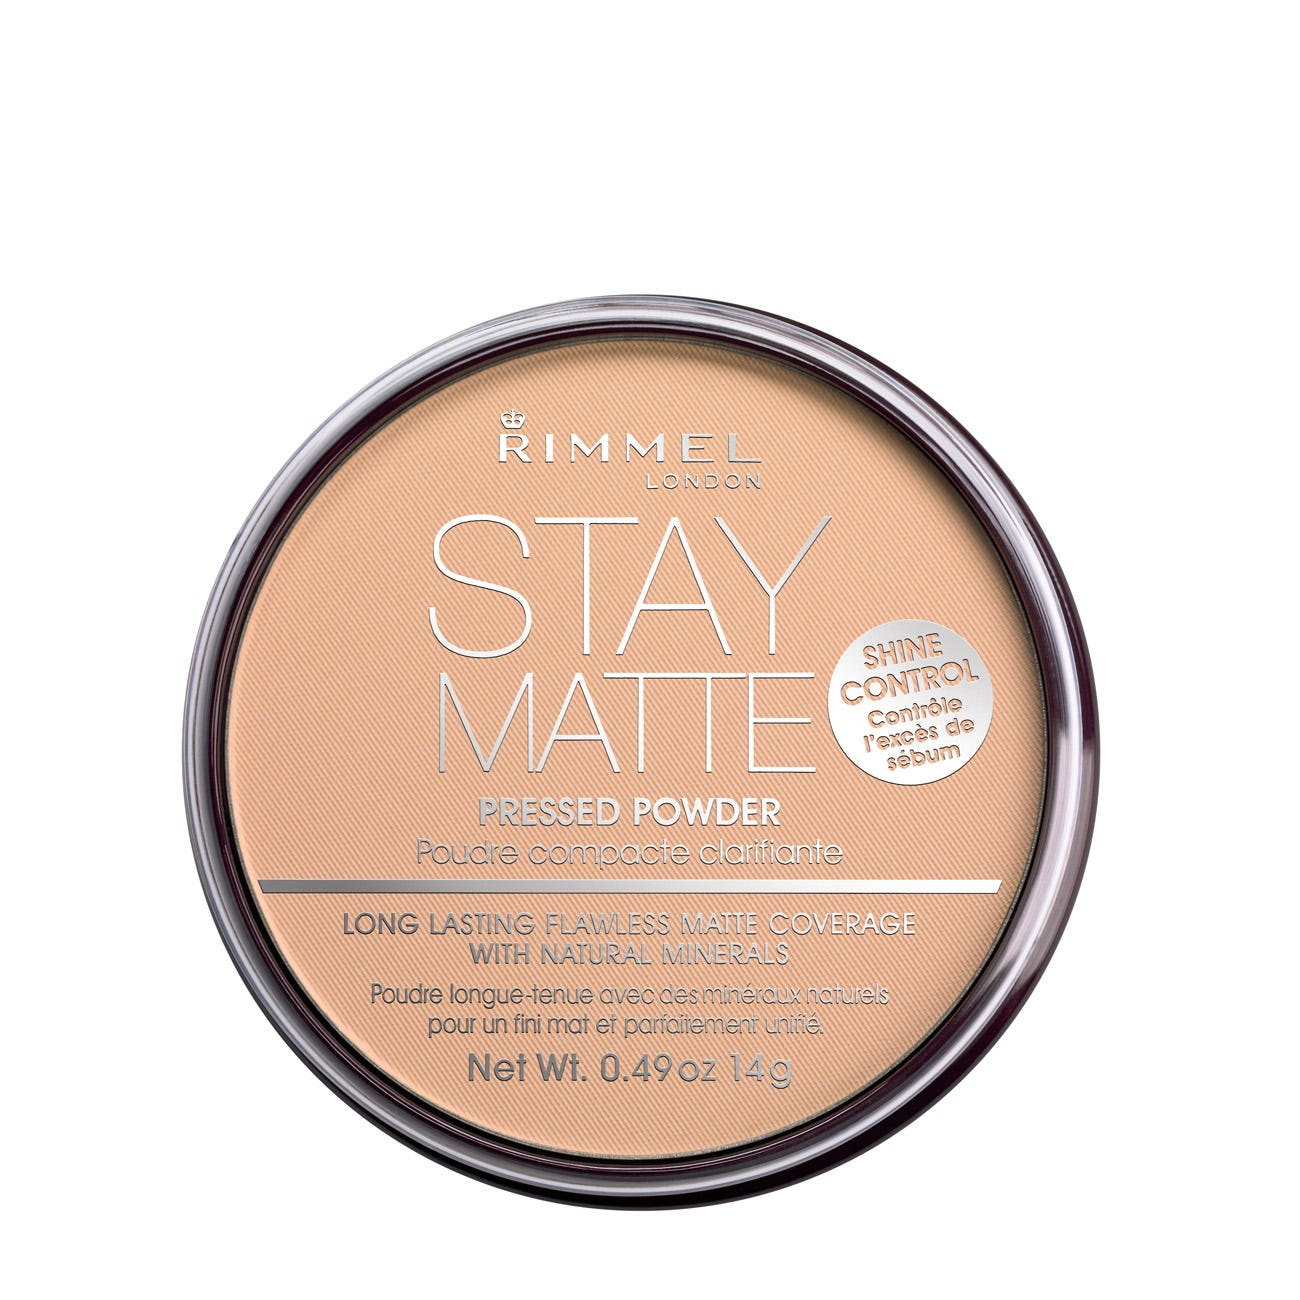 Stay Matte Primer by Rimmel